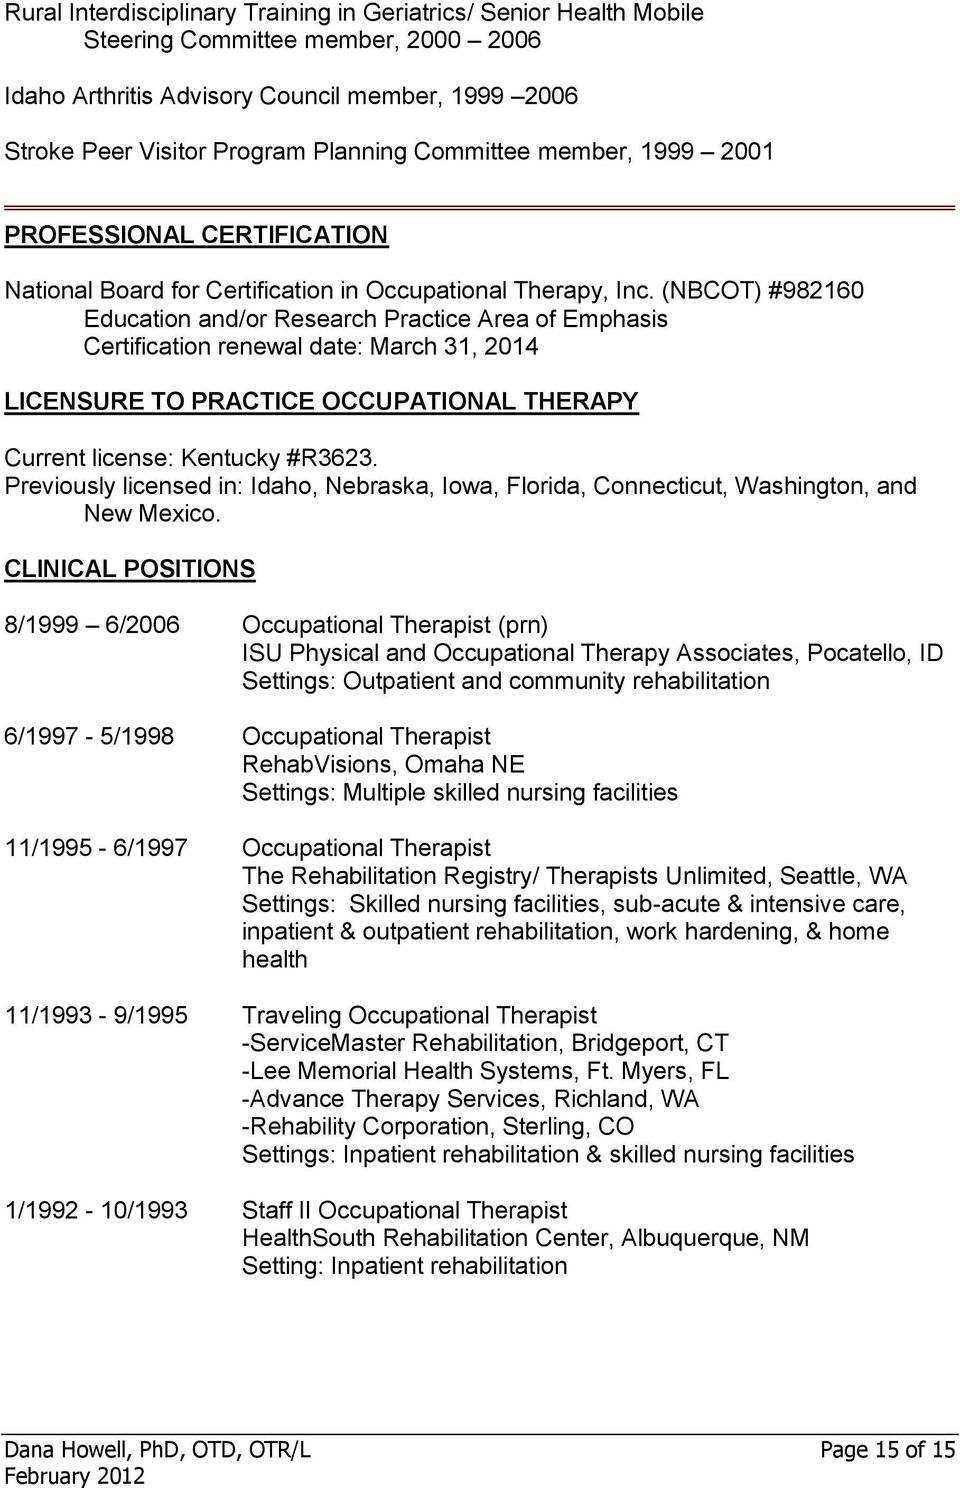 (NBCOT) #982160 Education and/or Research Practice Area of Emphasis Certification renewal date: March 31, 2014 LICENSURE TO PRACTICE OCCUPATIONAL THERAPY Current license: Kentucky #R3623.